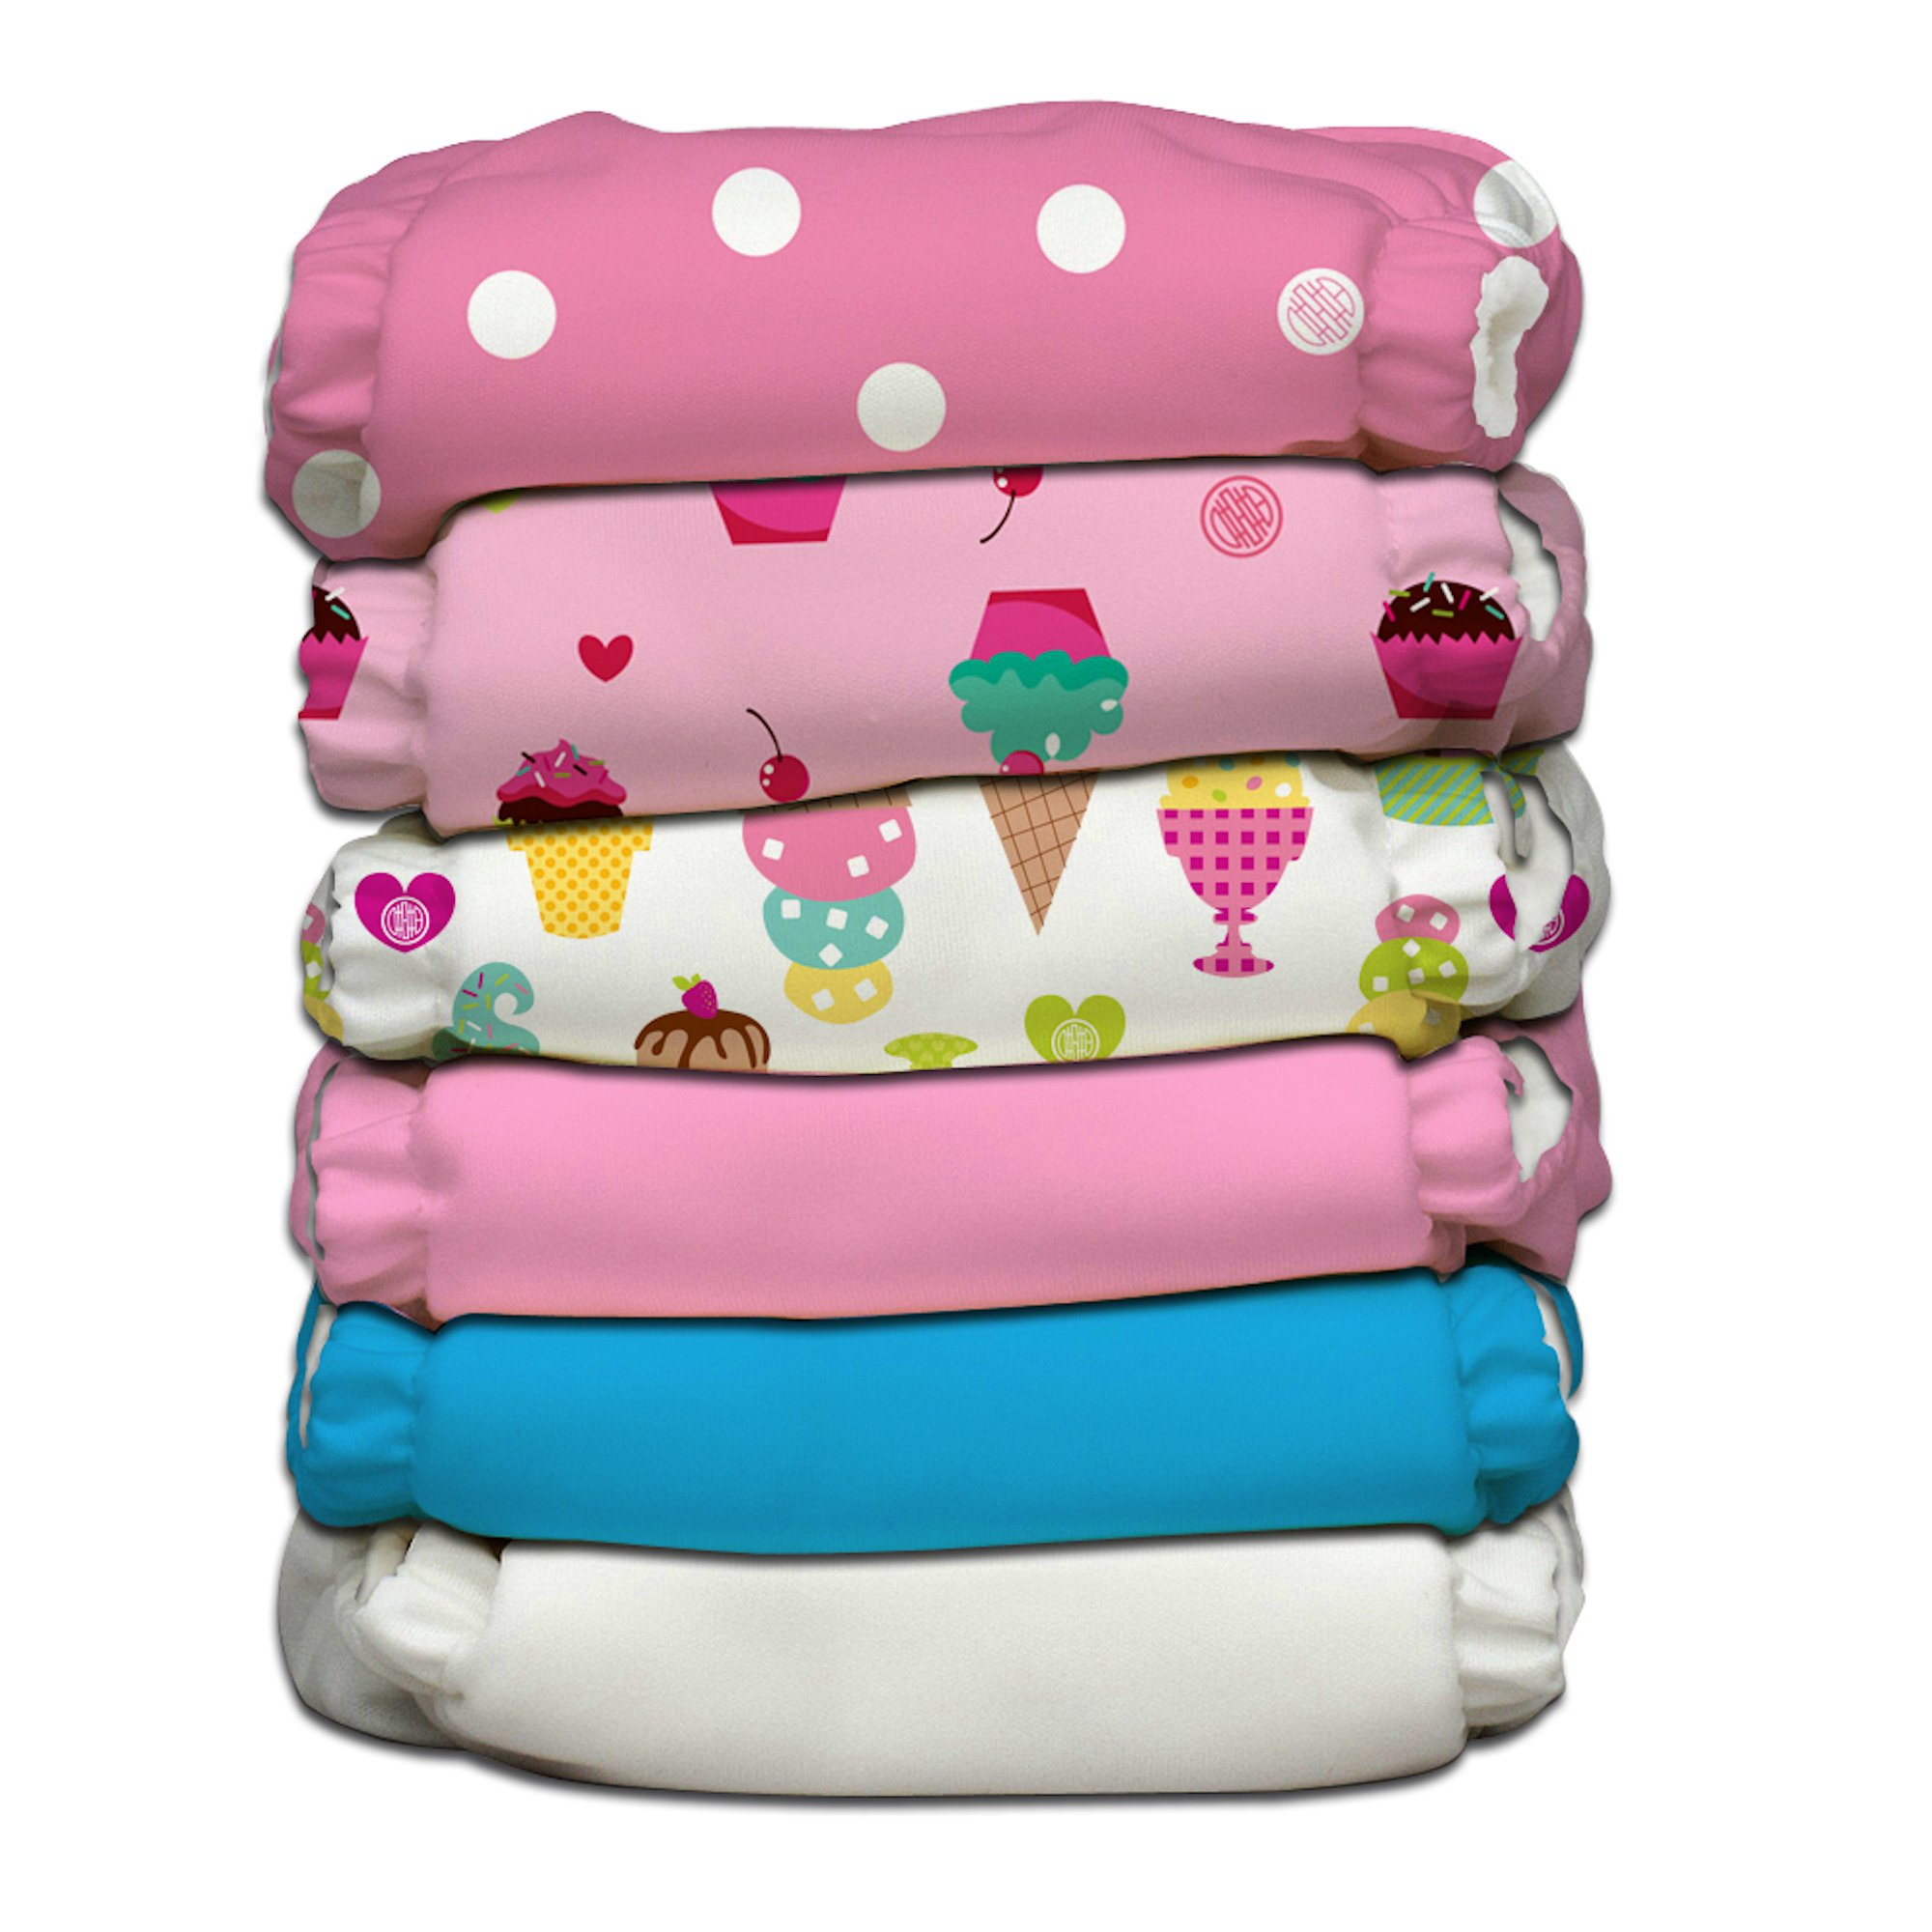 Charlie Banana 6 Piece Diapers with 12 Inserts, Organic Popsicle